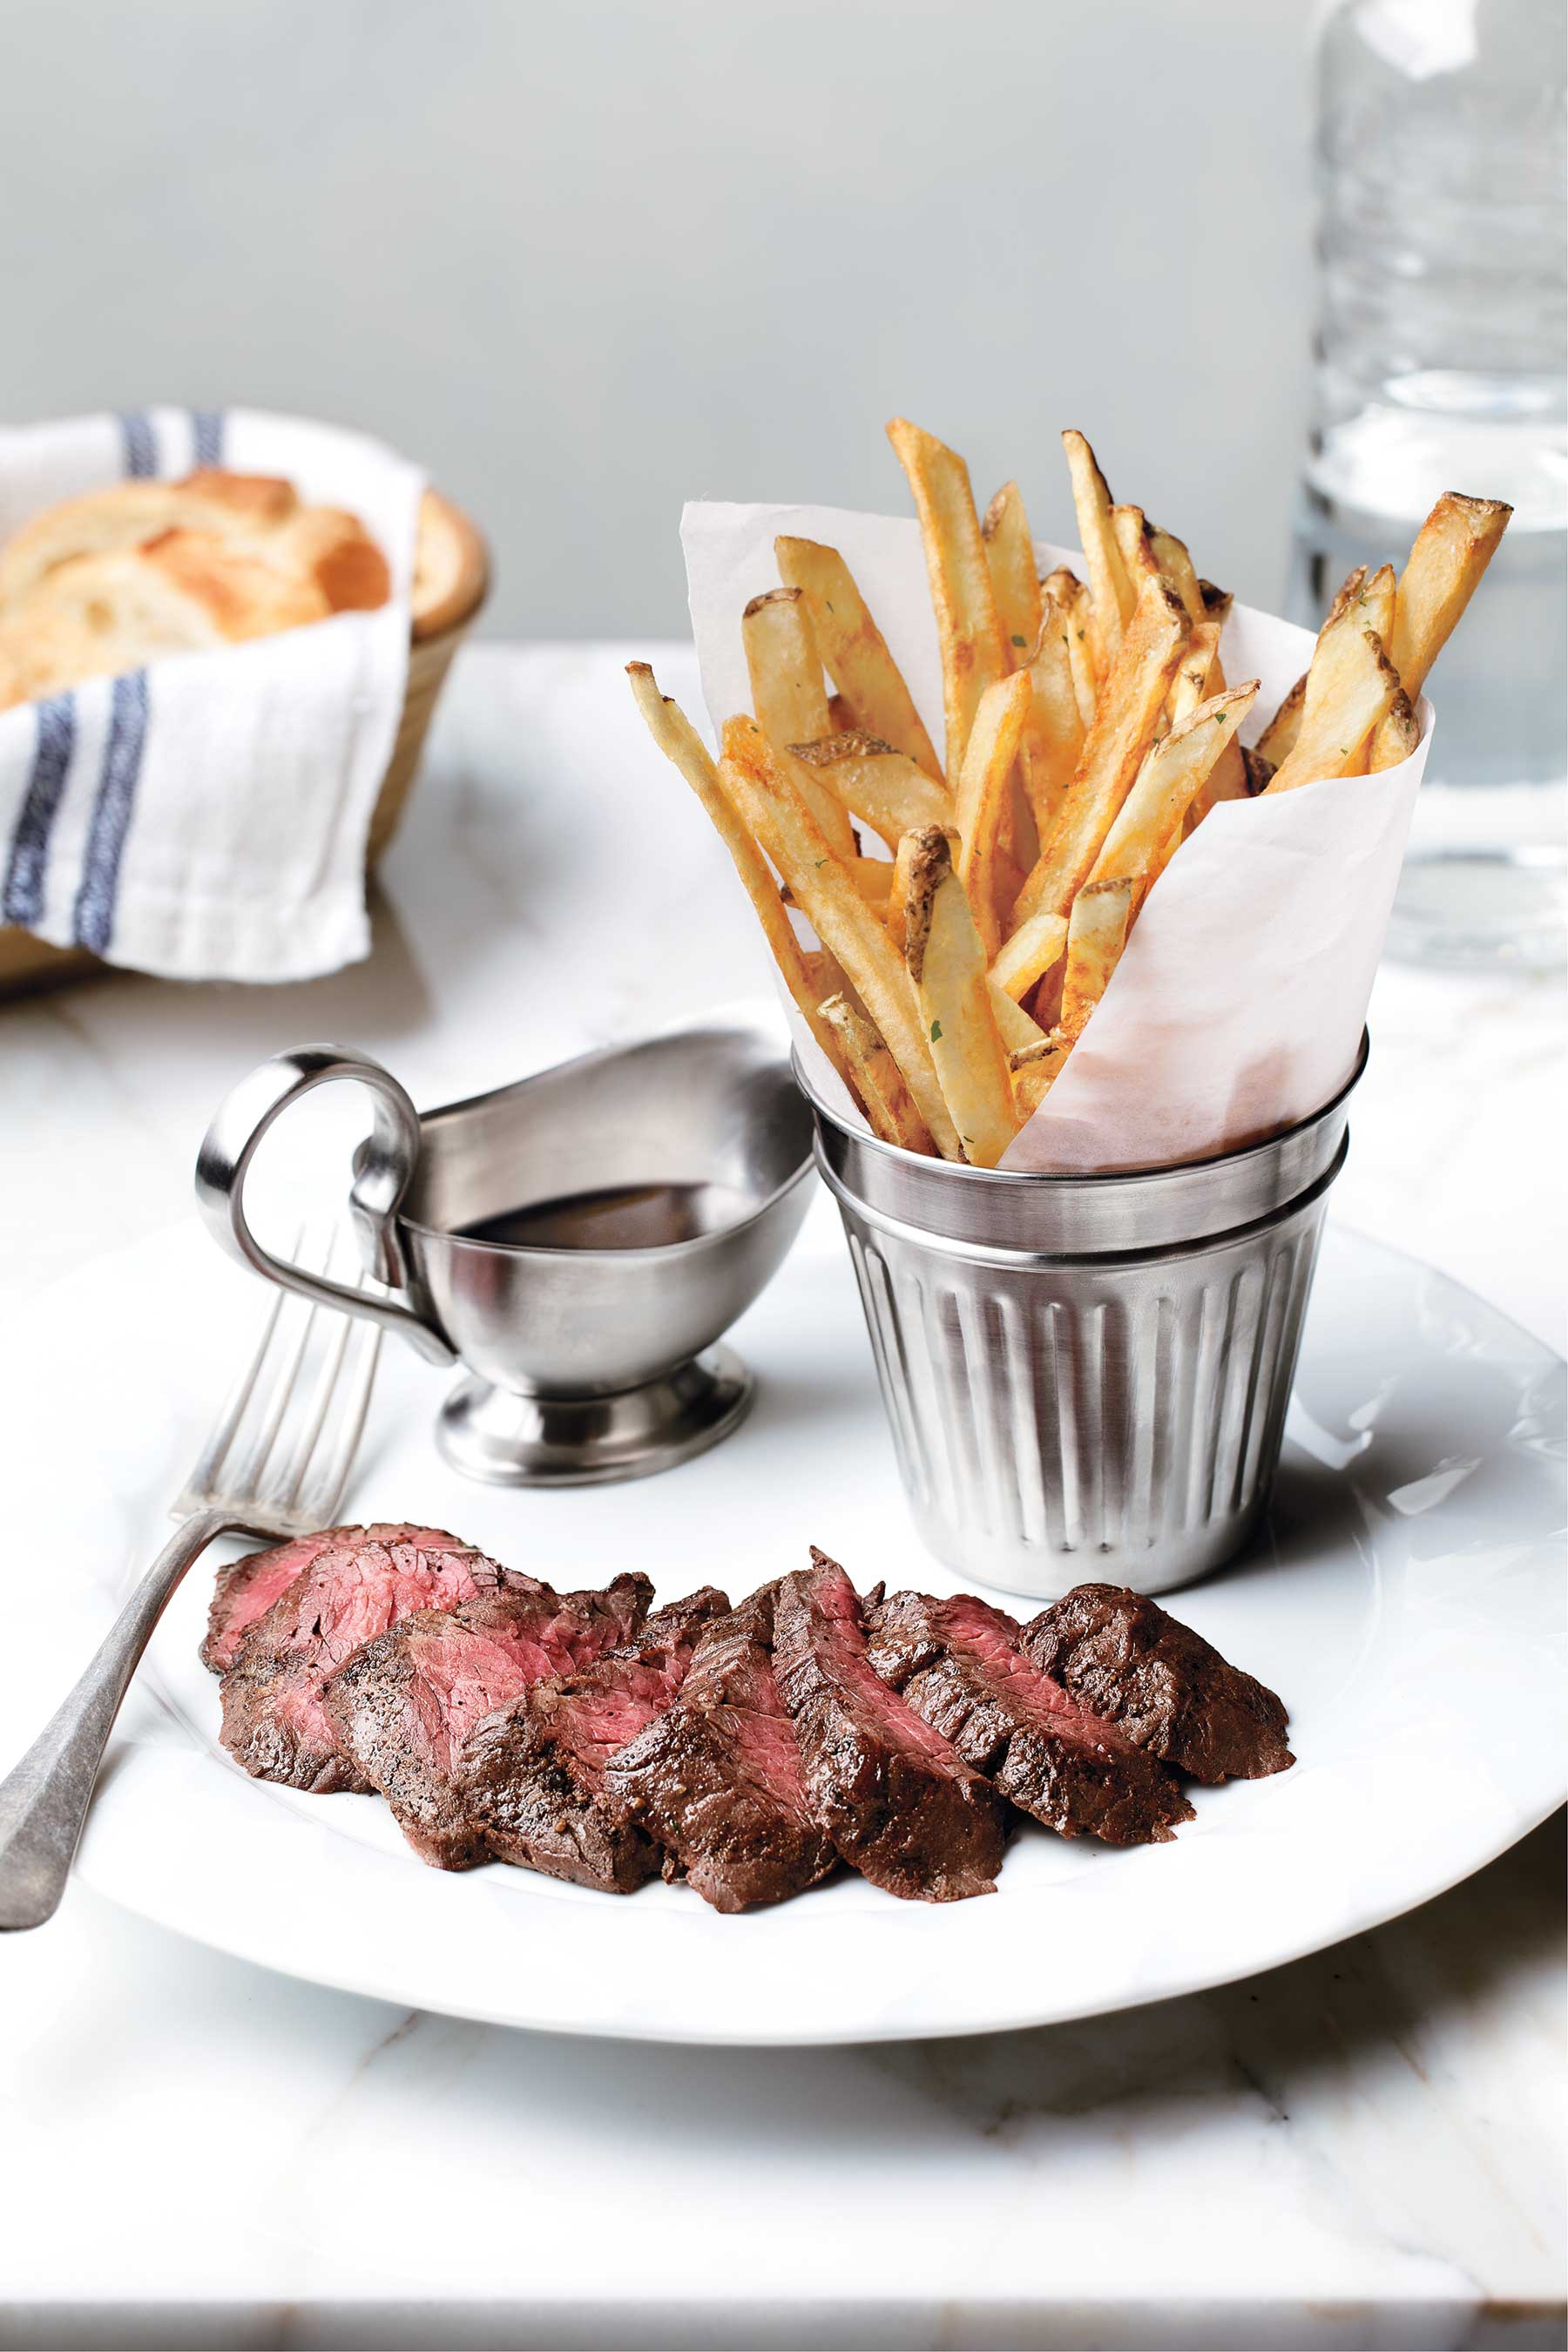 Offering the highest quality cuts of beef cooked over an oak wood and charcoal grill, BARDOT Brasserie at ARIA lets guests customize their Steak Frites with an 8 oz. Flat Iron, 12 oz. Ribeye or 8 oz. Filet Mignon topped with a choice of Bearnaise, Au Poivre, Bordelaise or Foie Gras Butter, accompanied by perfectly crispy beef fat fries.